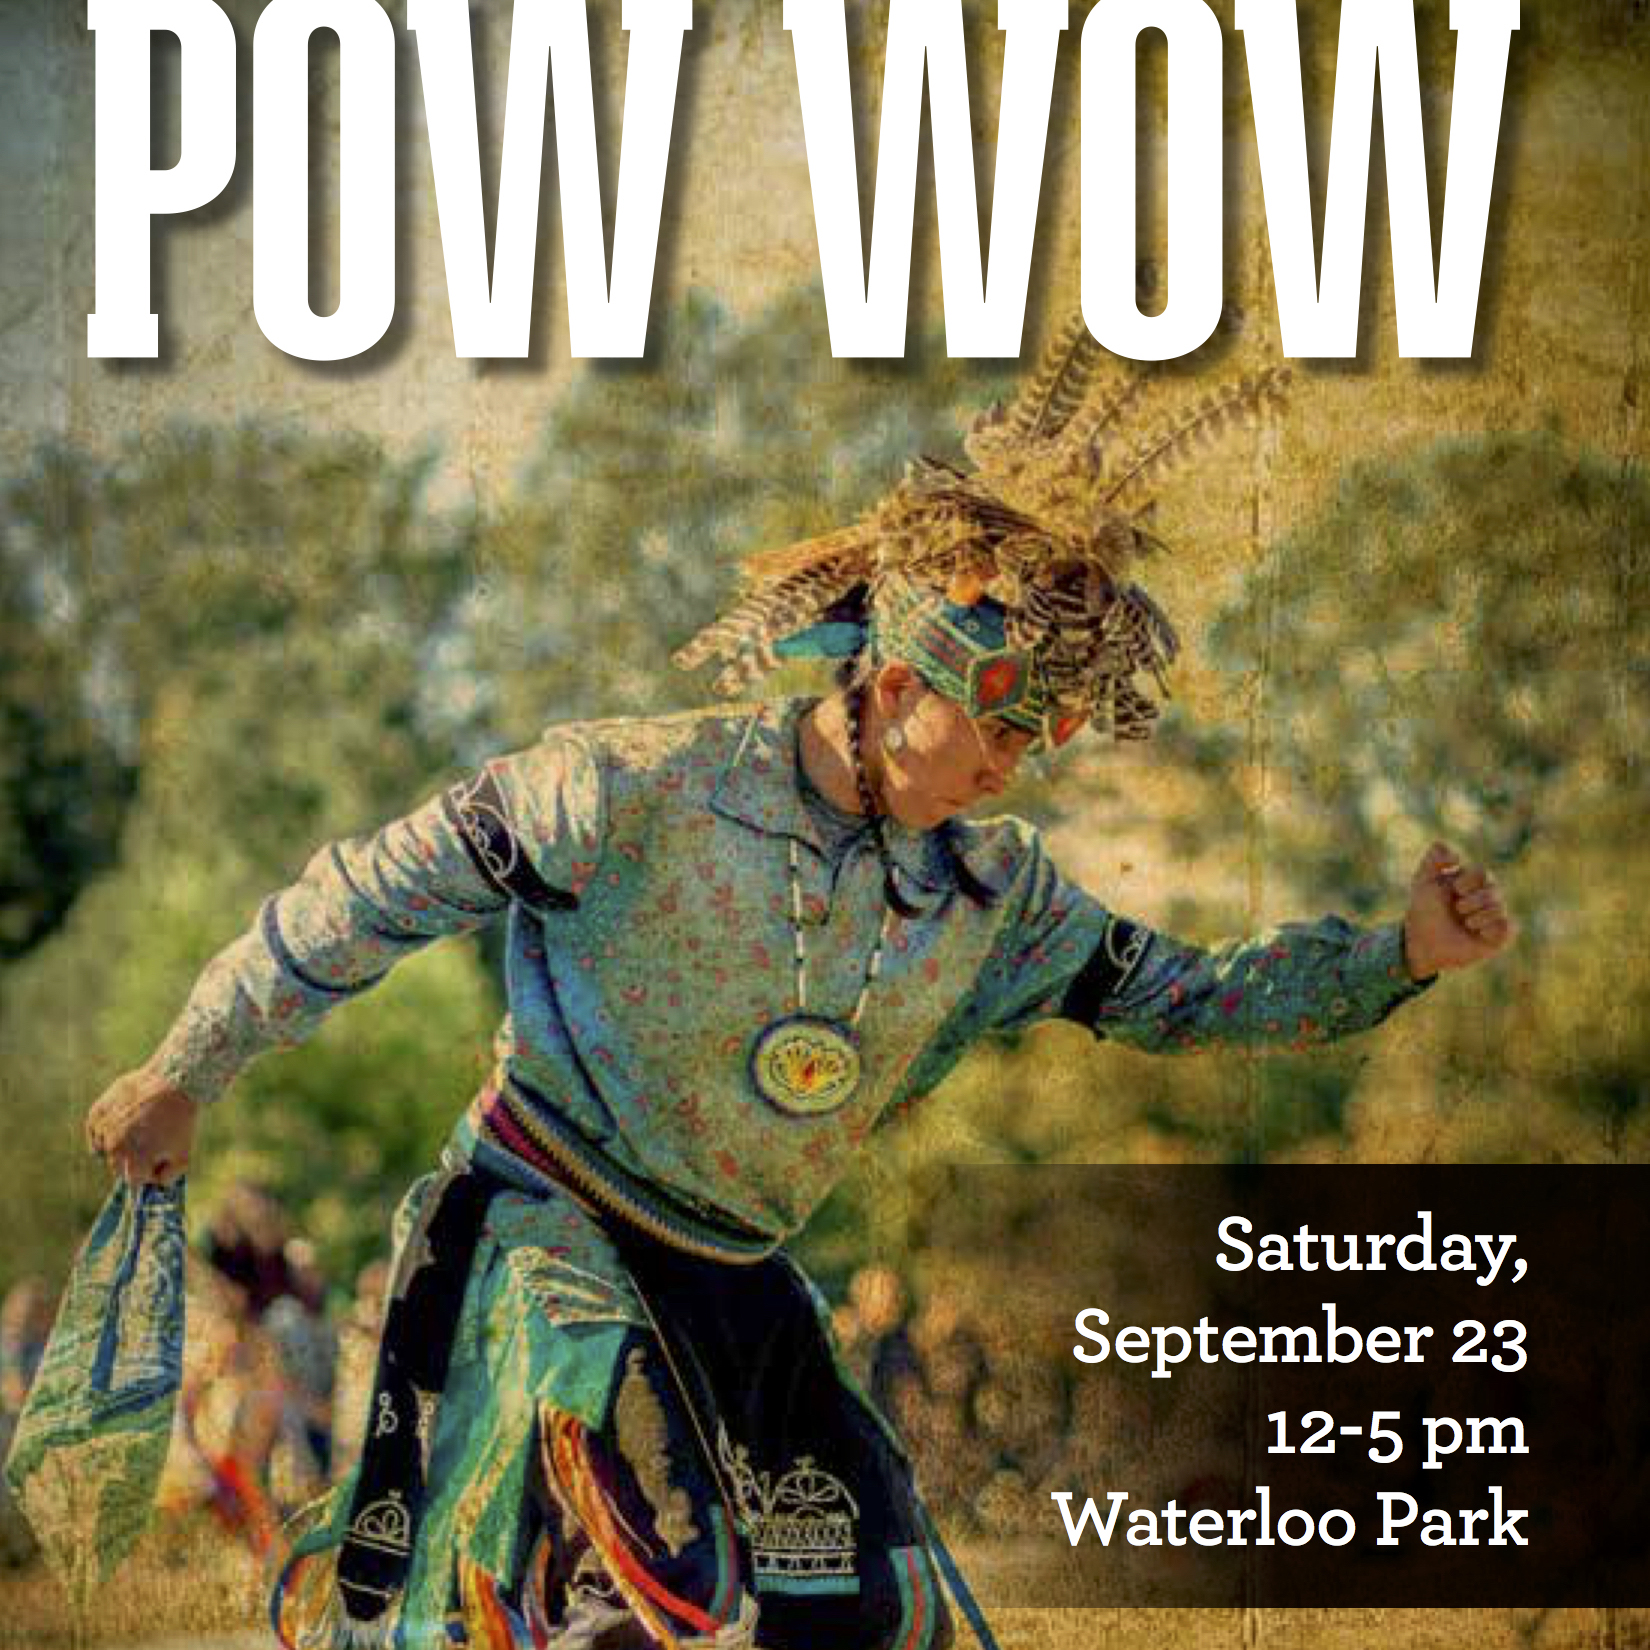 Indigenous dancer on Pow Wow poster detail